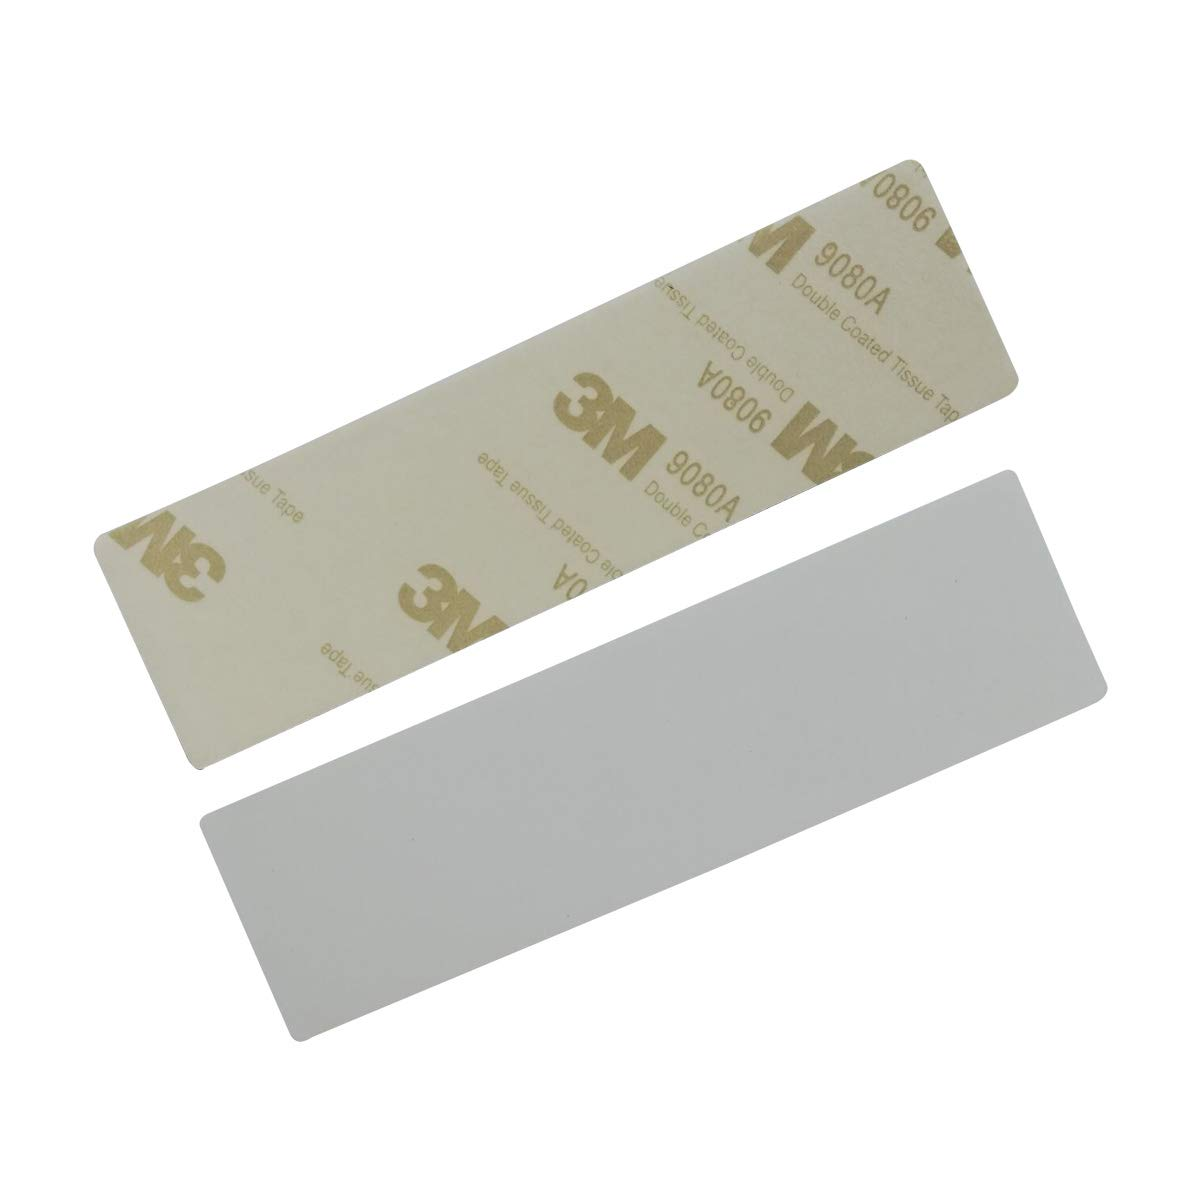 uhf Soft Sticker Metal RFID Long Reading Distance 18000-6c (Pack of 5)